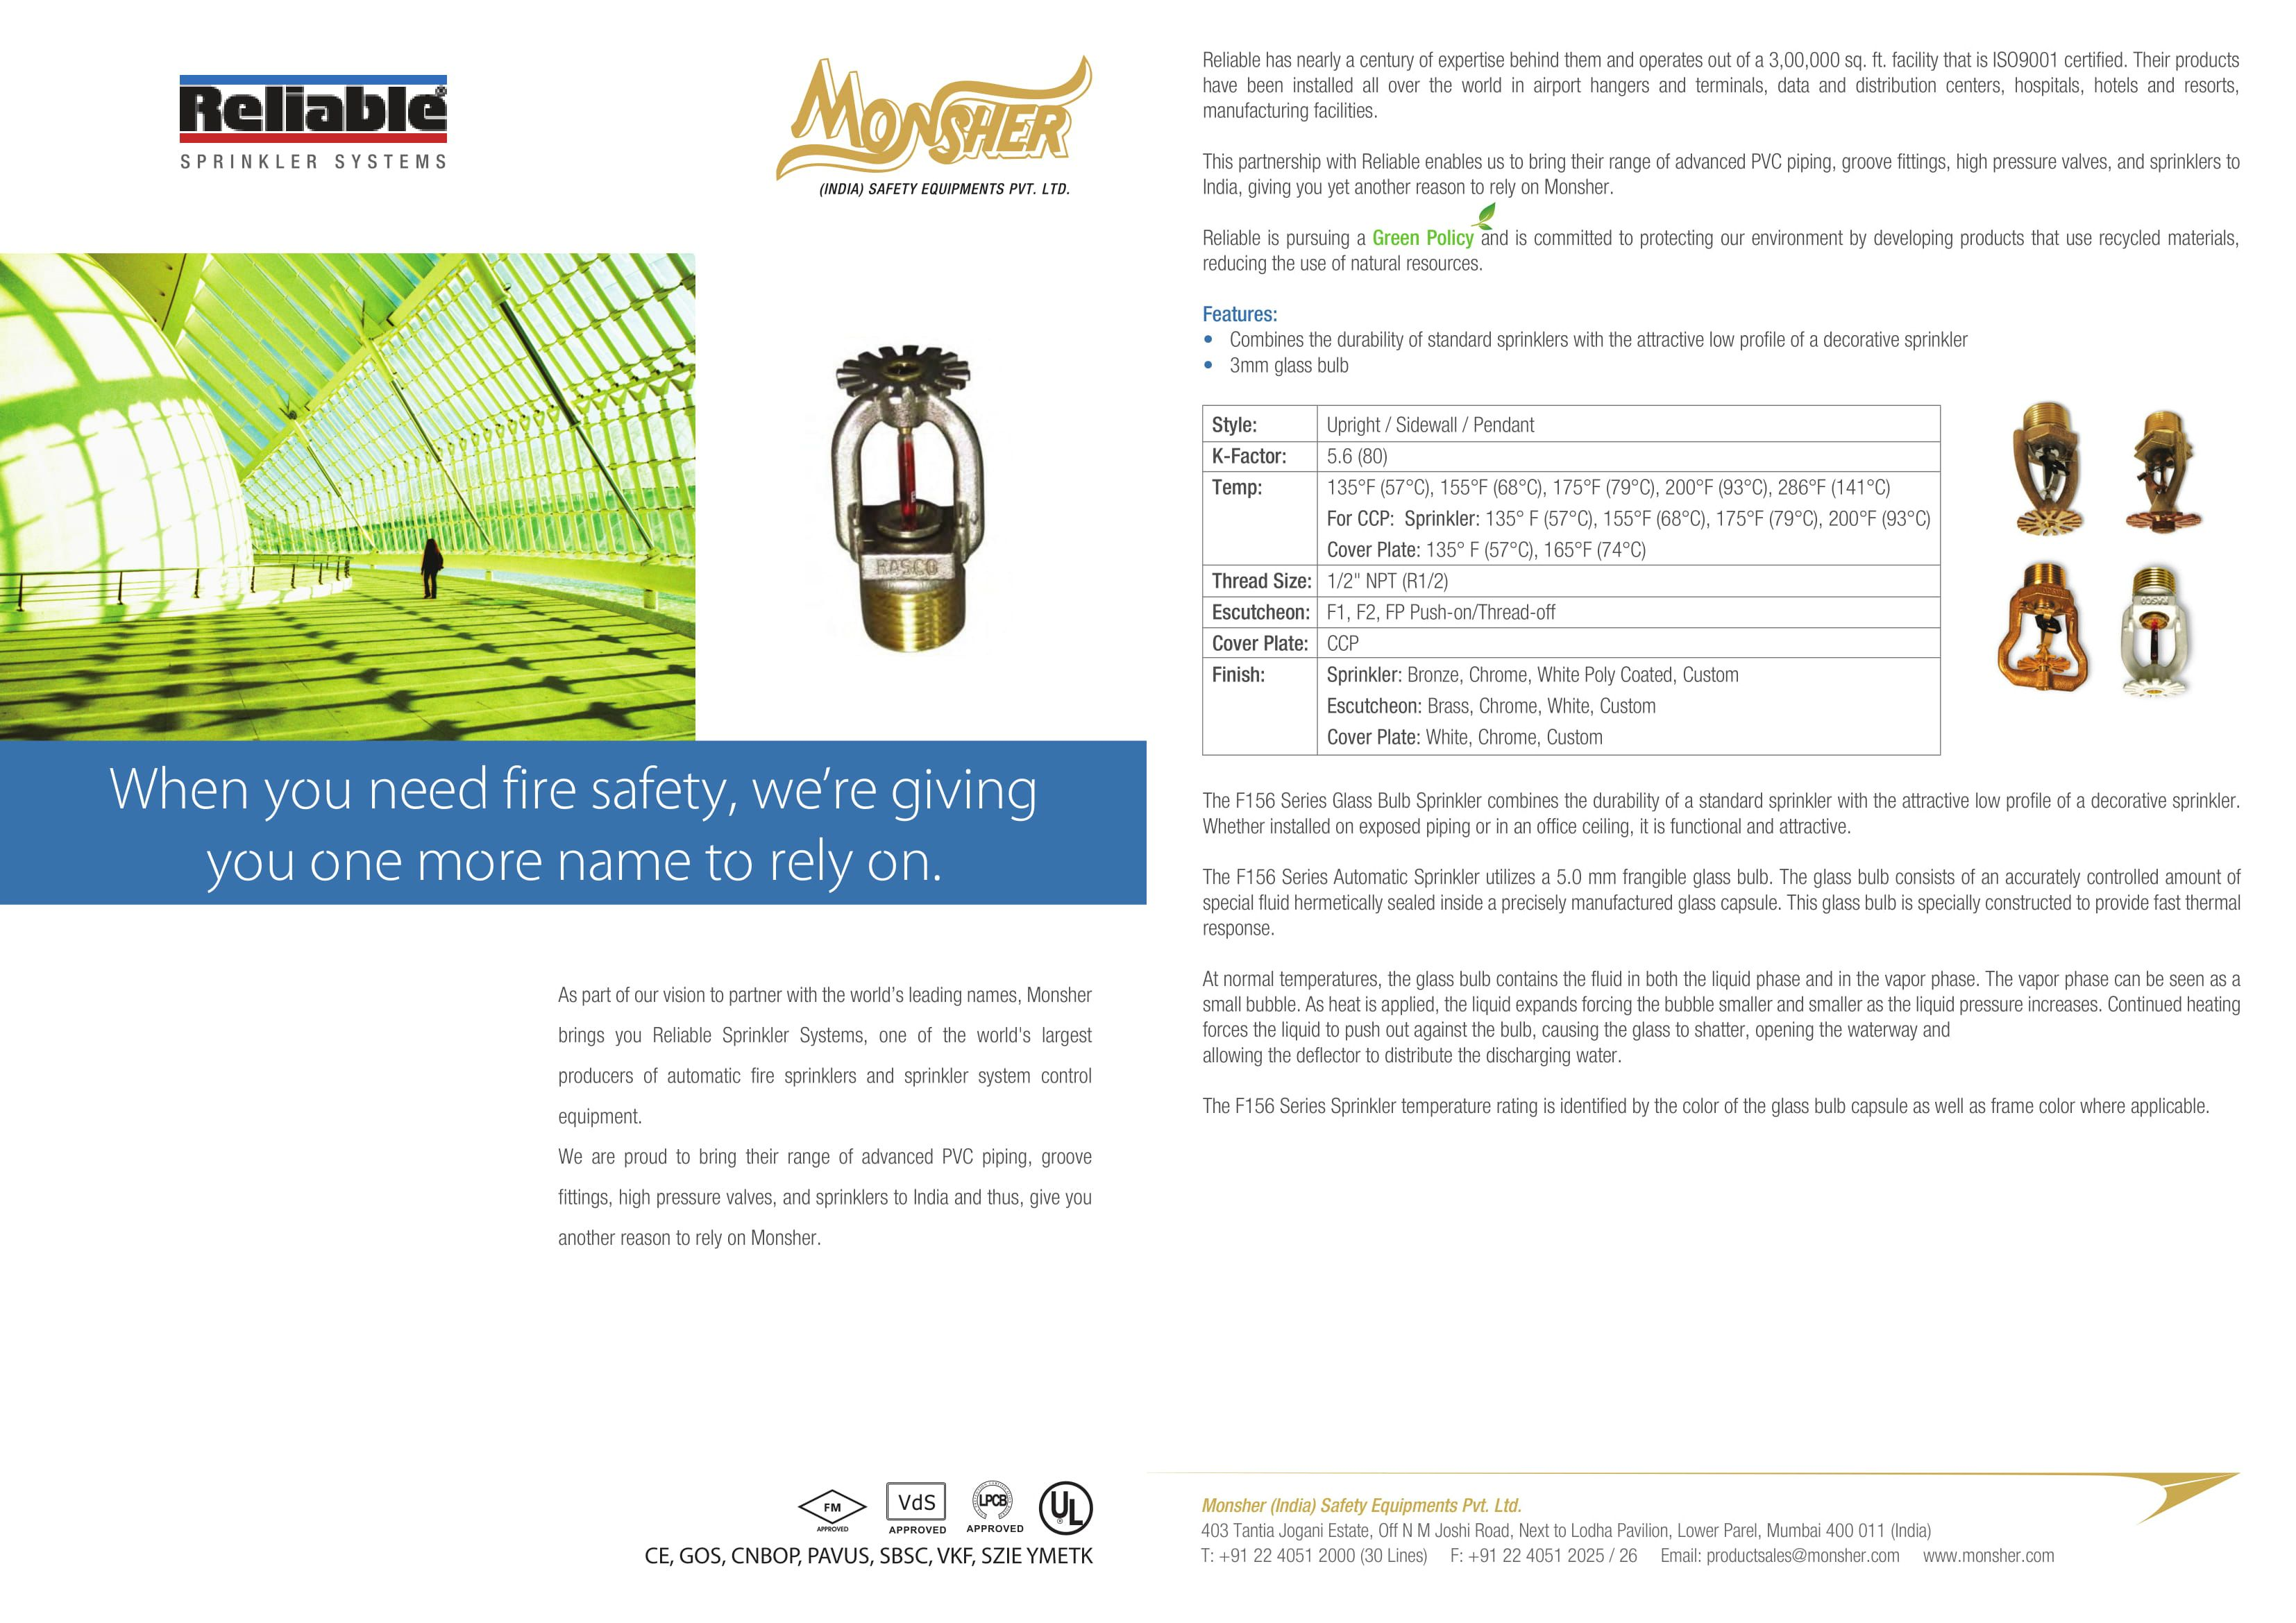 monsher brings you reliable sprinkler systems in india one of the